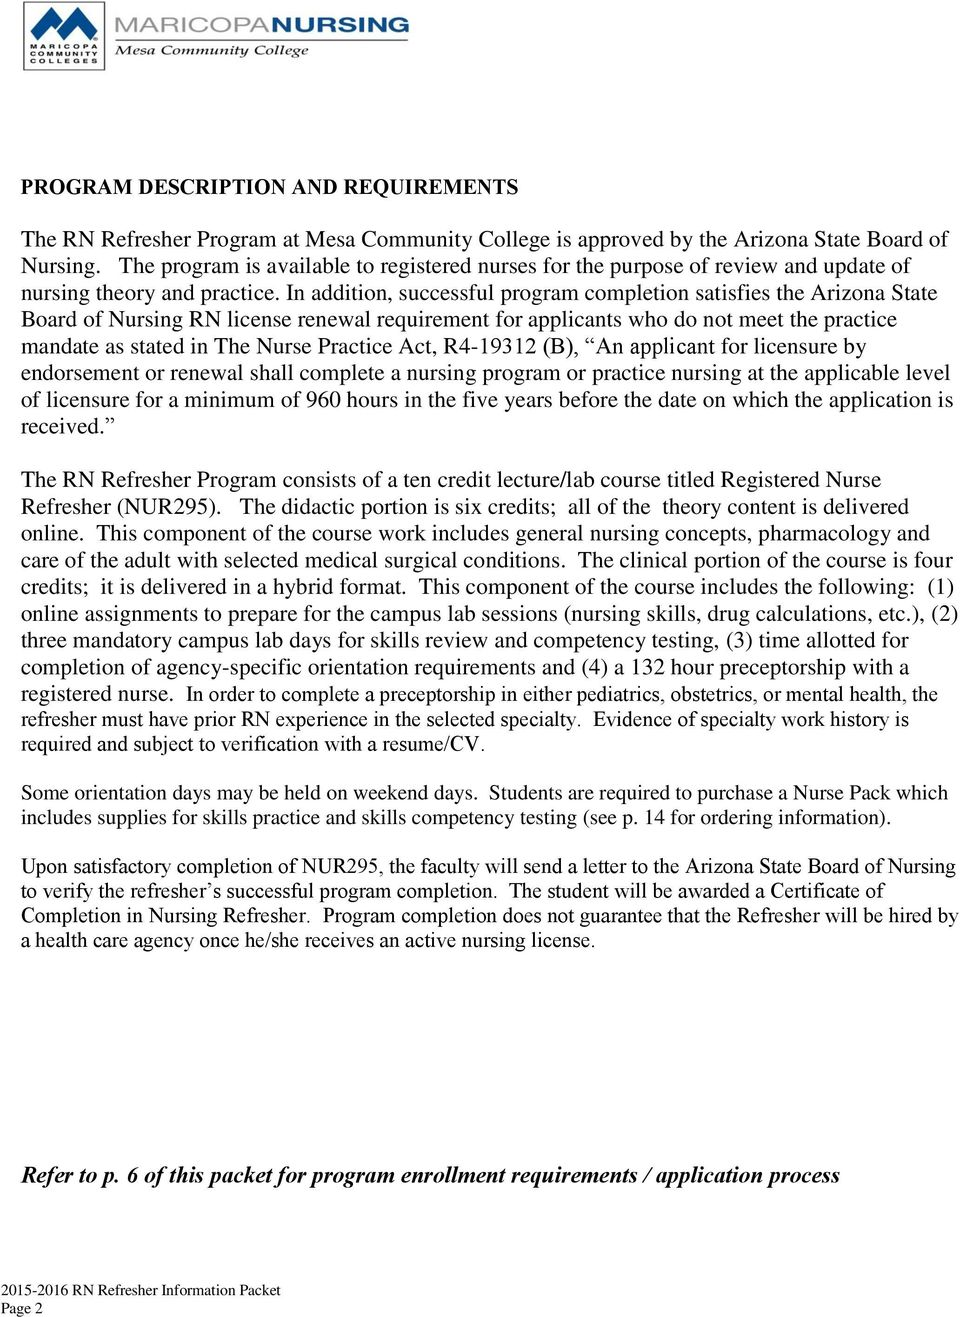 In addition, successful program completion satisfies the Arizona State Board of Nursing RN license renewal requirement for applicants who do not meet the practice mandate as stated in The Nurse